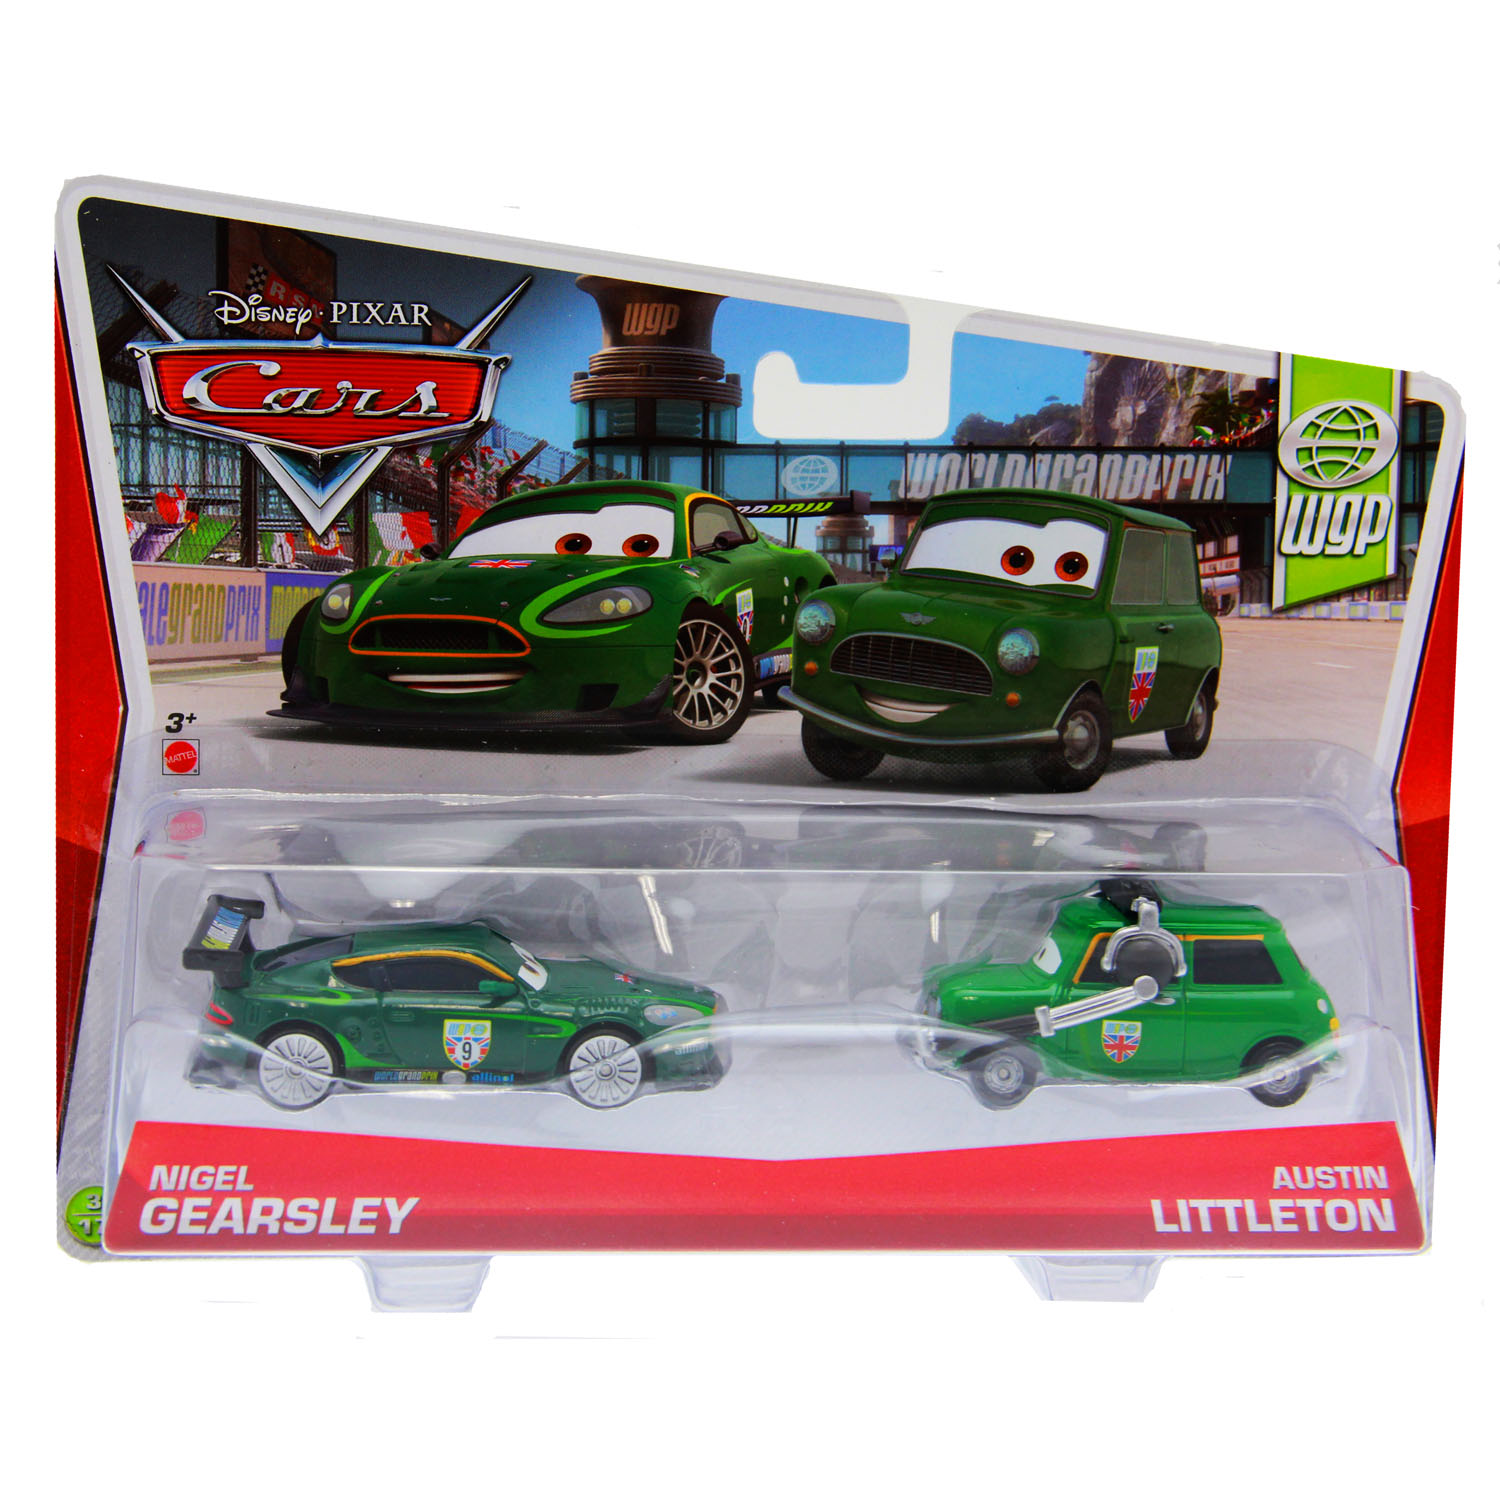 Cars 1 And 2 Toys : Disney cars toys pack nigel gearsley and austin